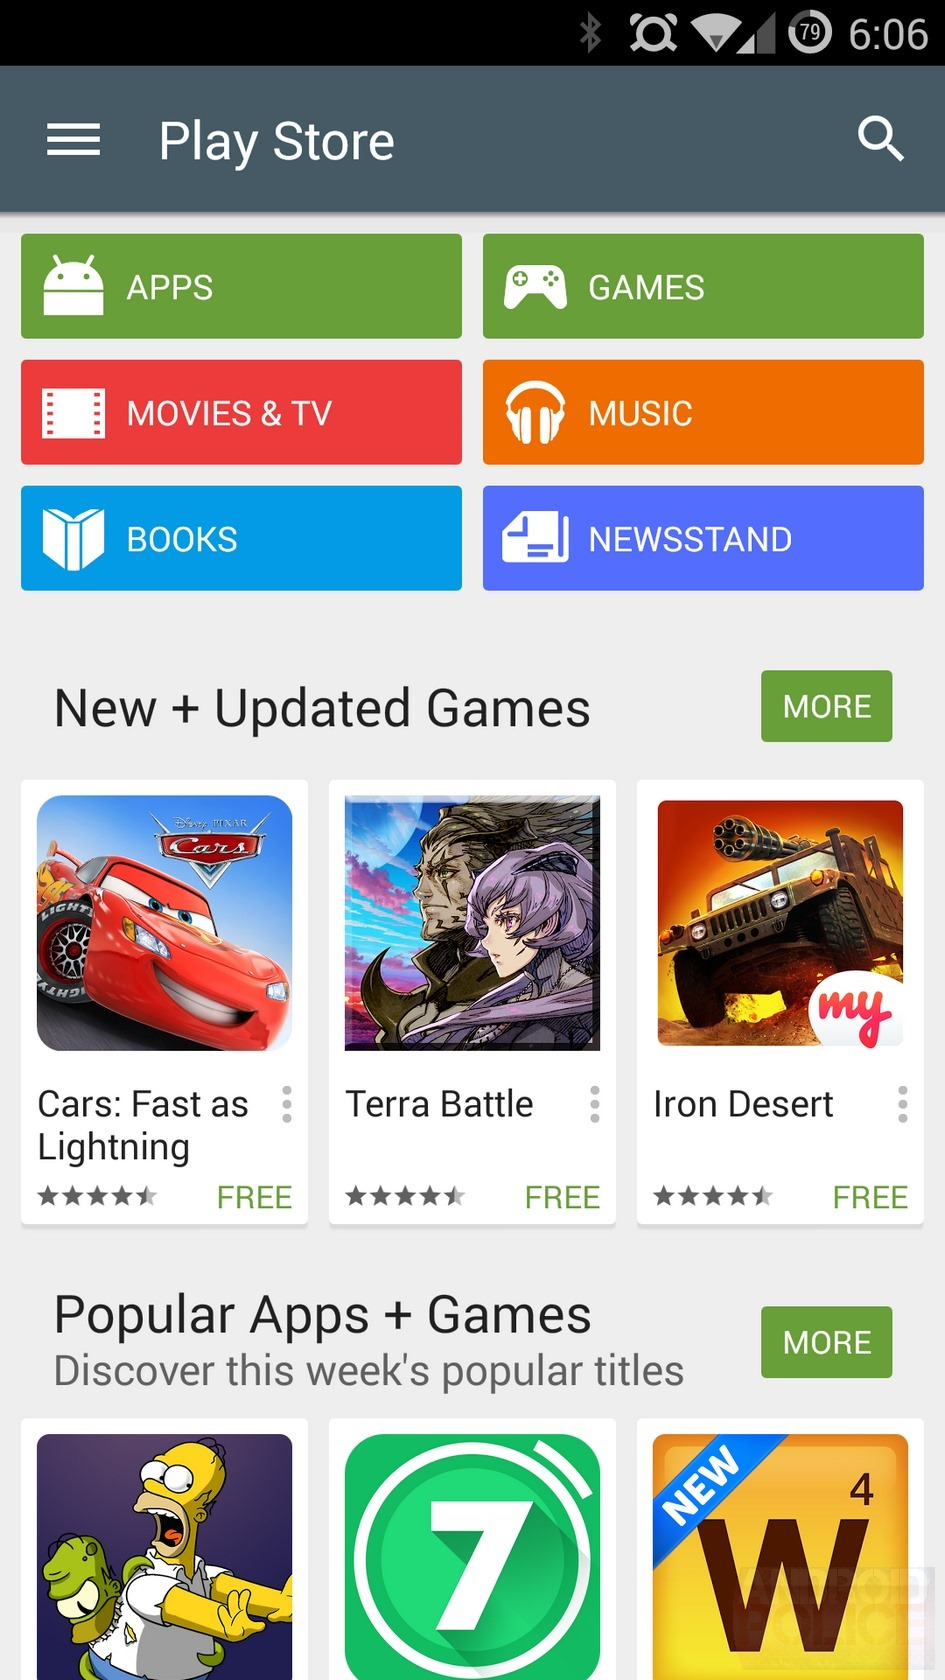 apk play store android 5.0